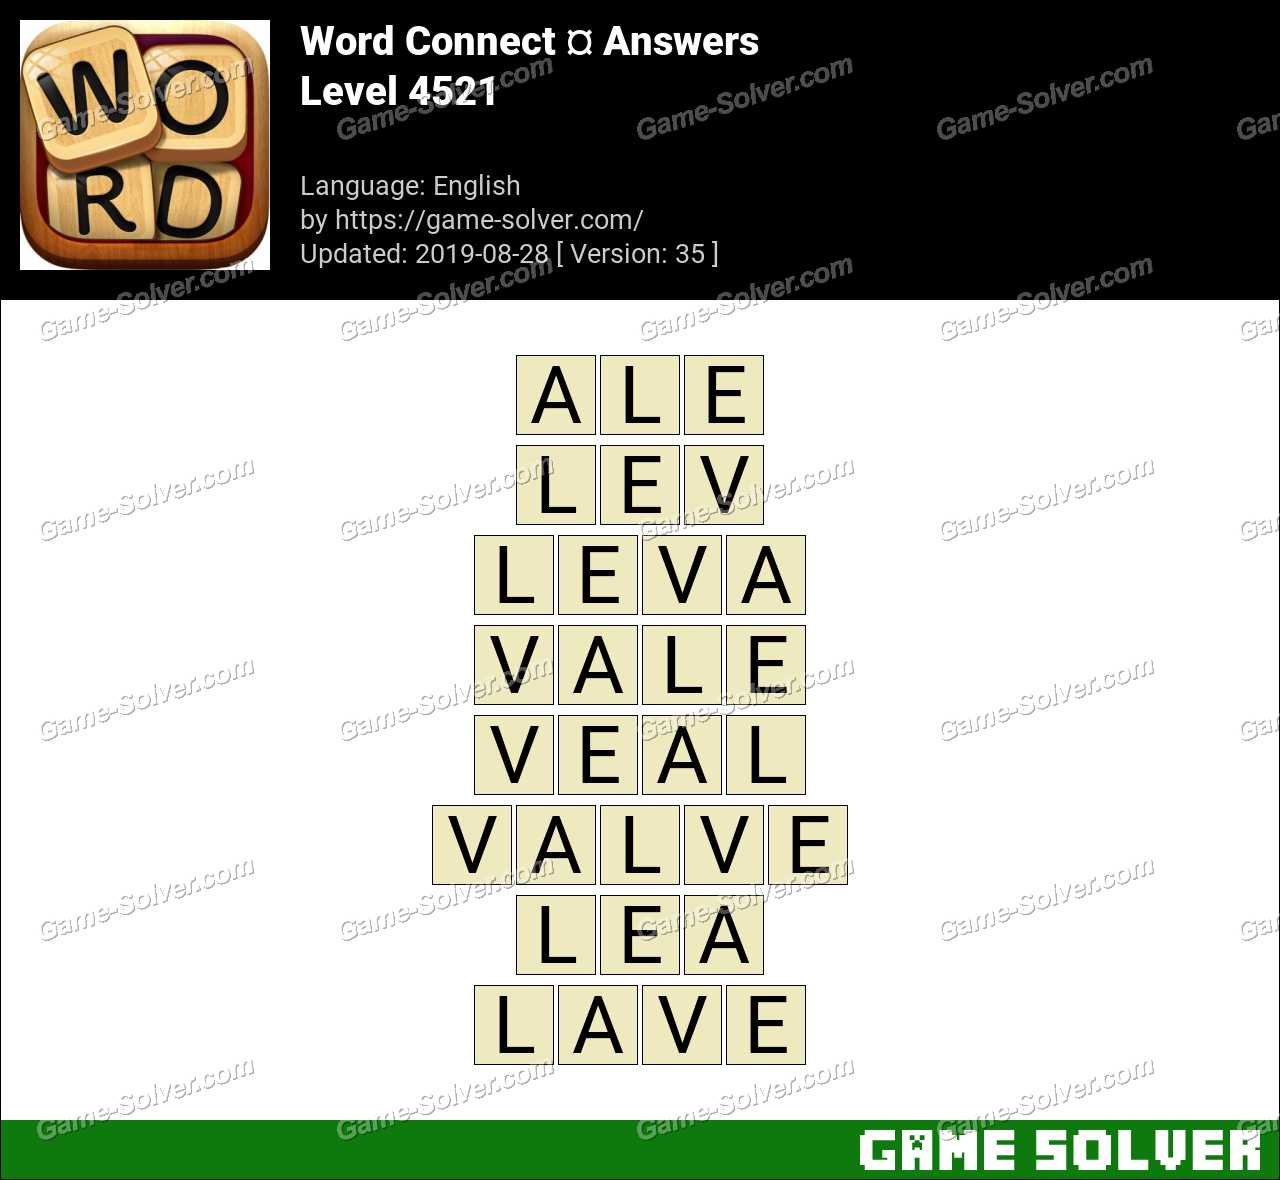 Word Connect Level 4521 Answers